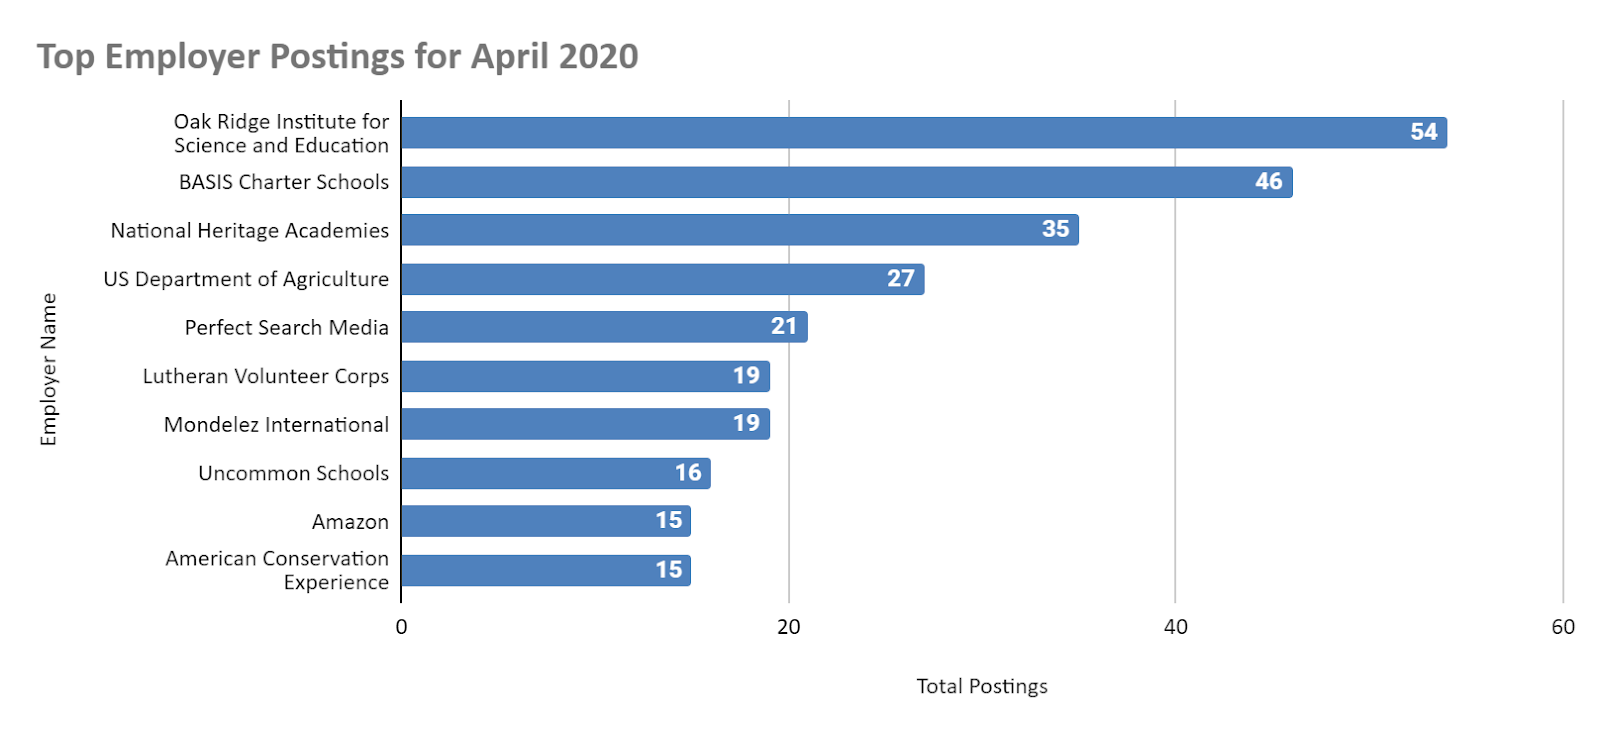 Top employer postings for april 2020